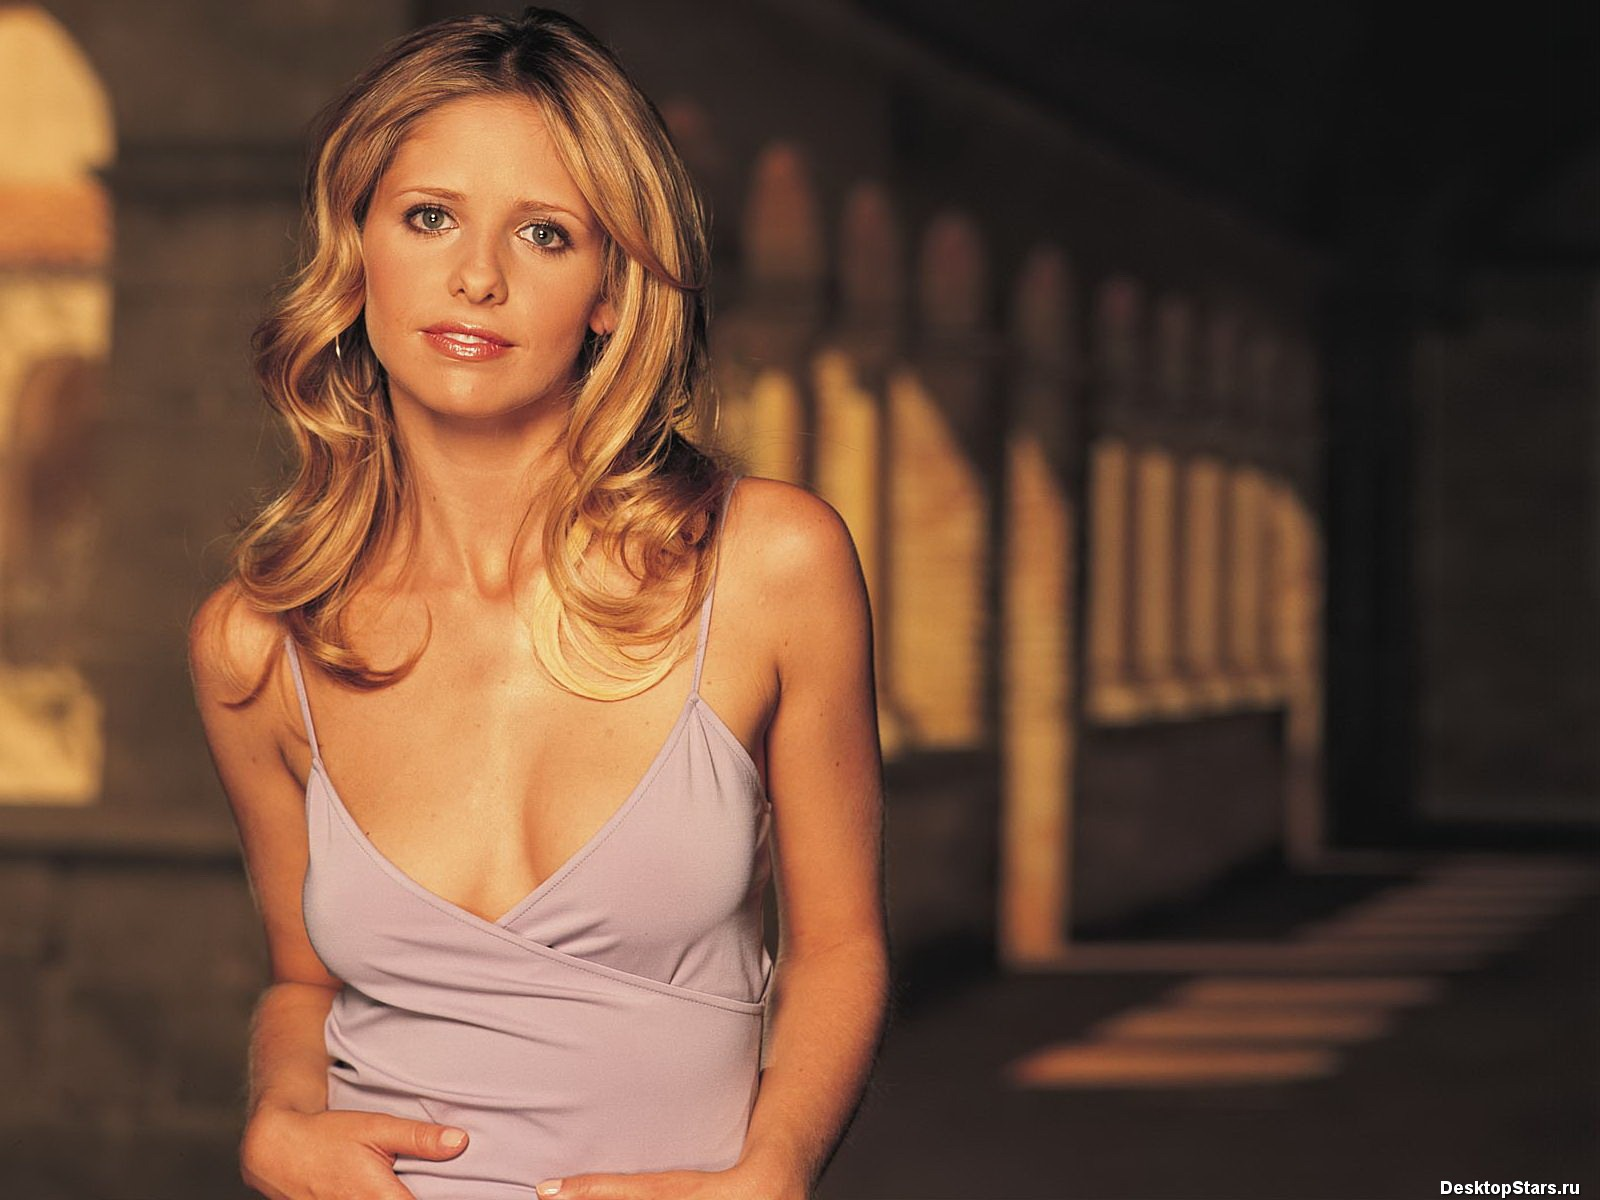 Sarah Michelle Gellar #019 - 1600x1200 Wallpapers Pictures Photos Images